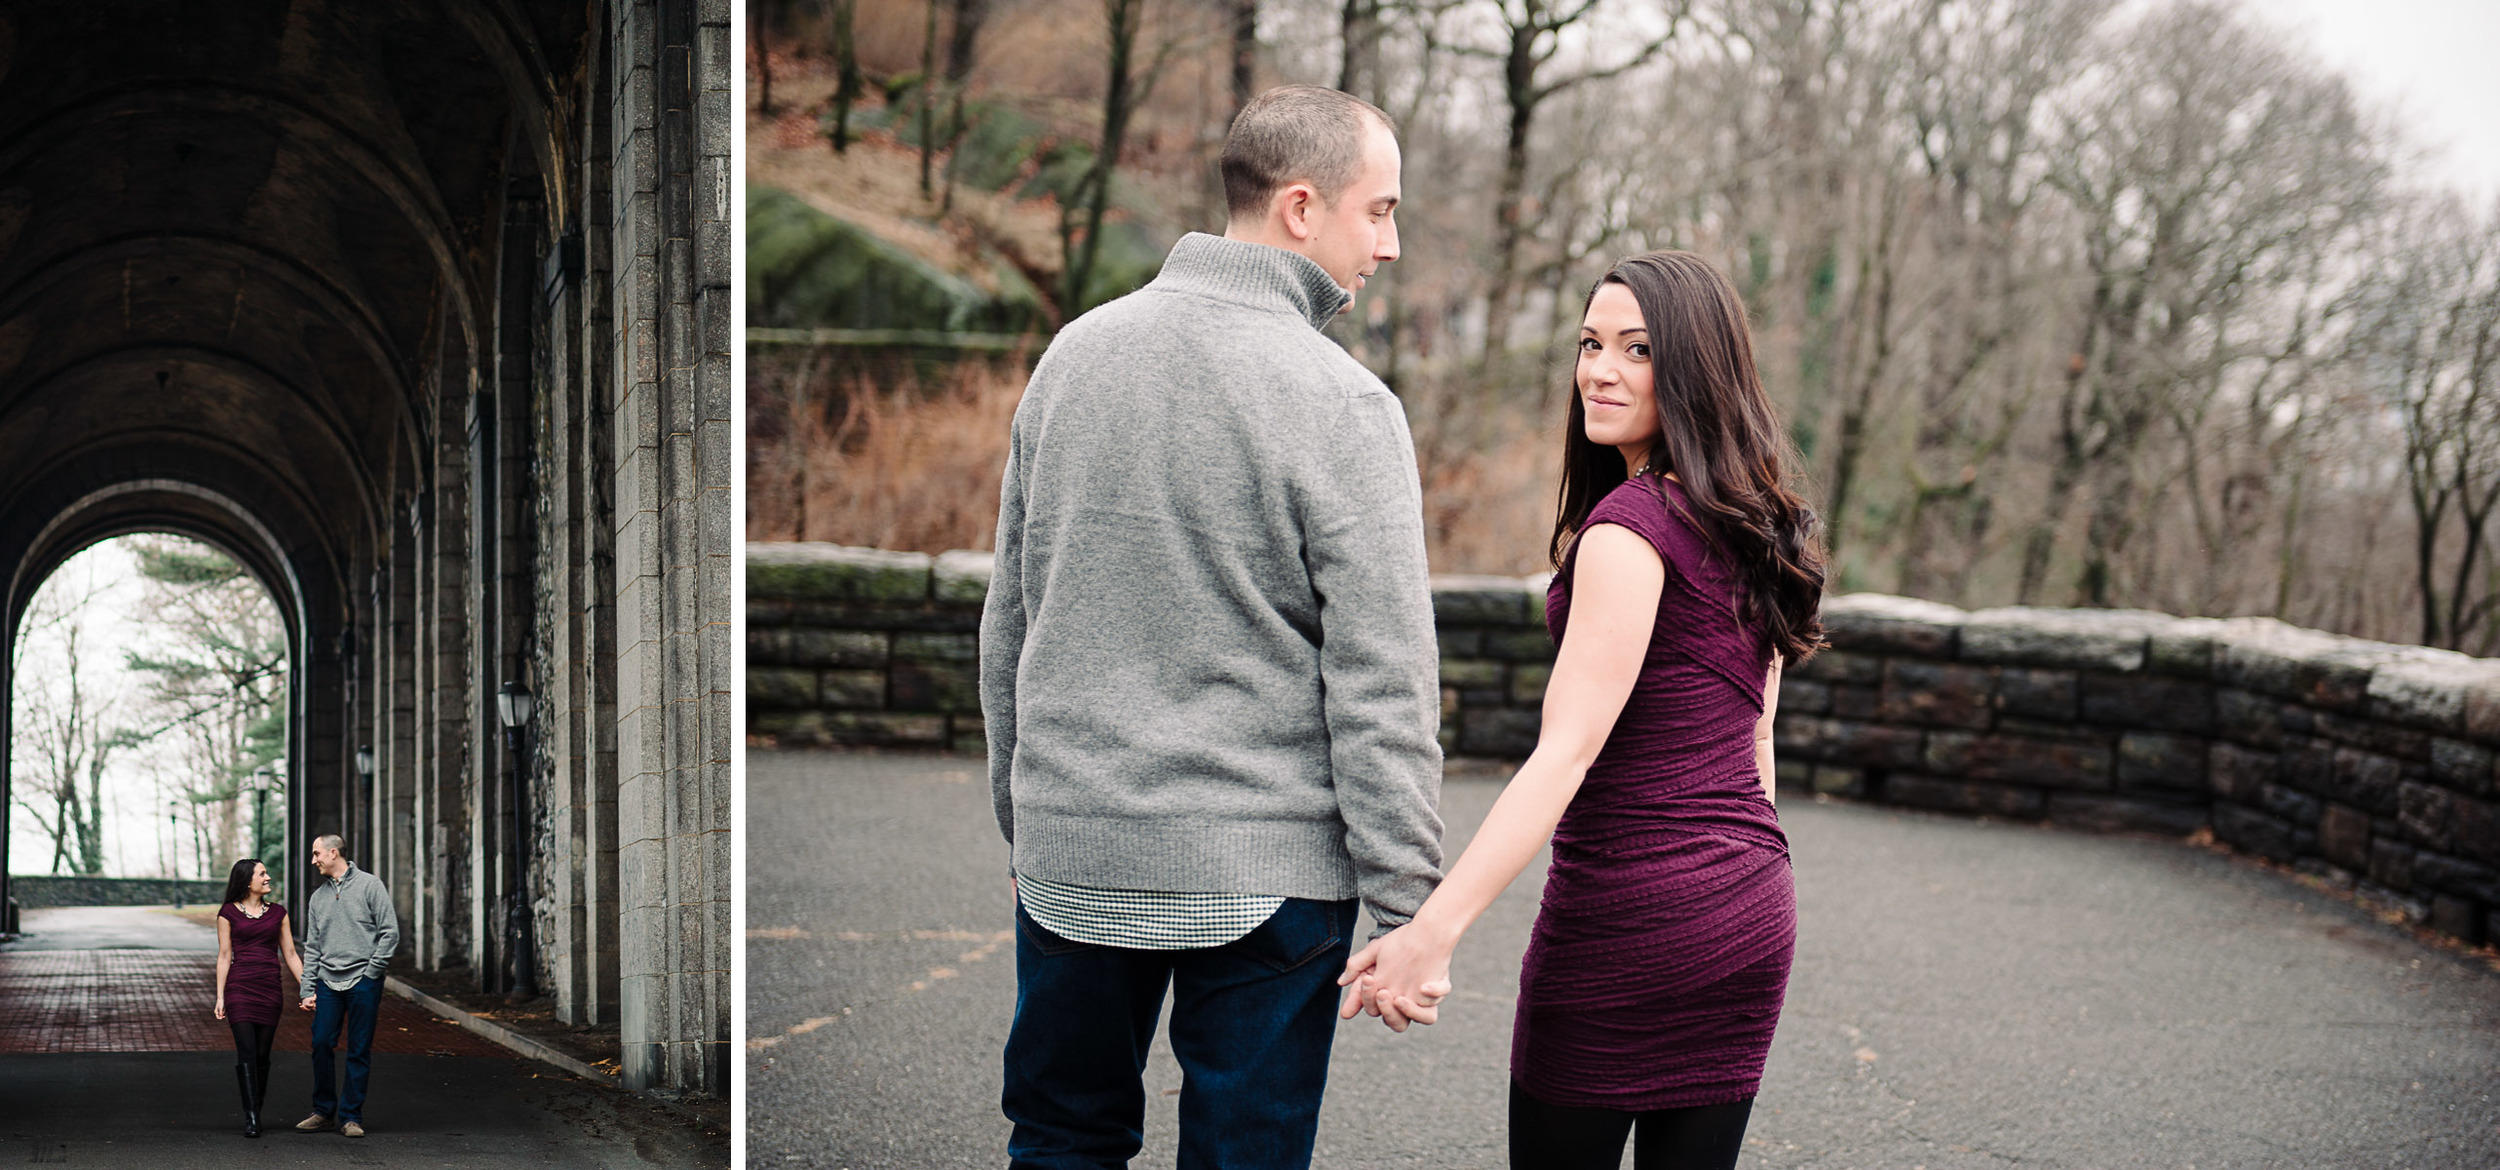 Cloisters Fort Tryon Park Engagement Photography